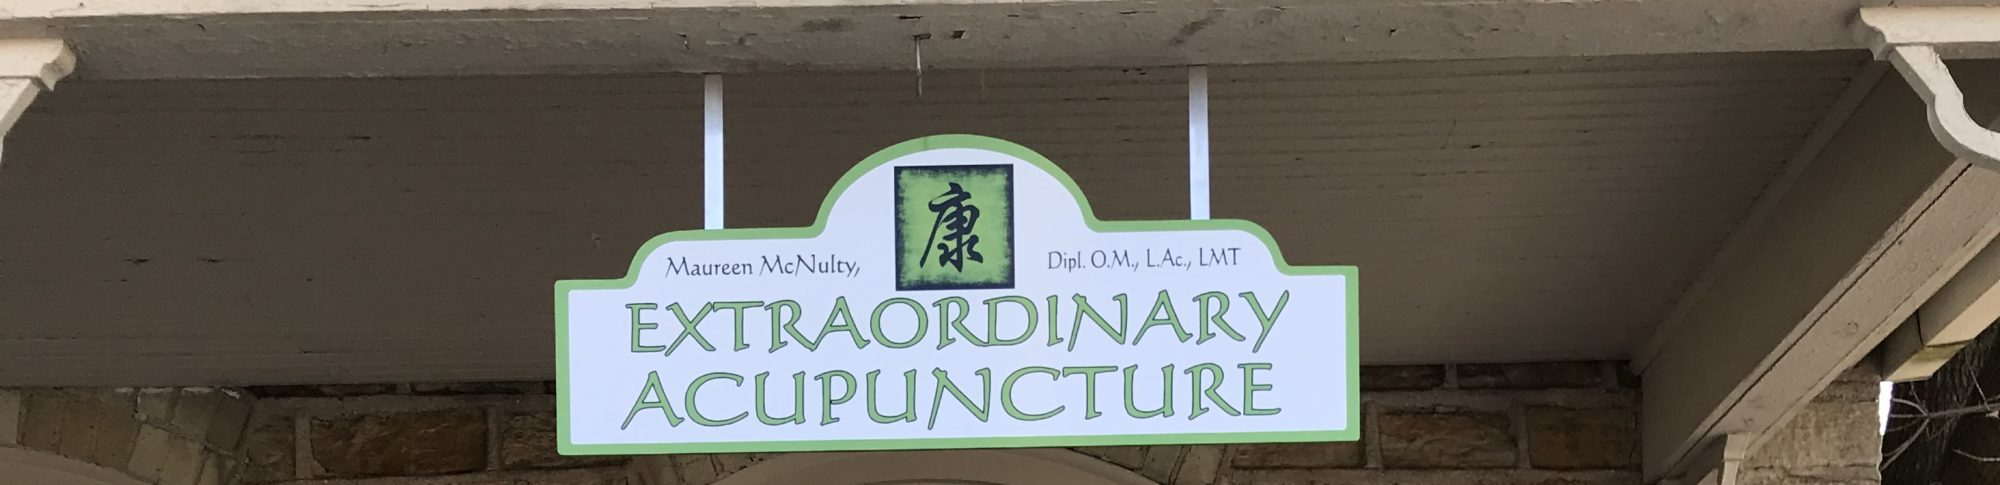 Extraordinary Acupuncture